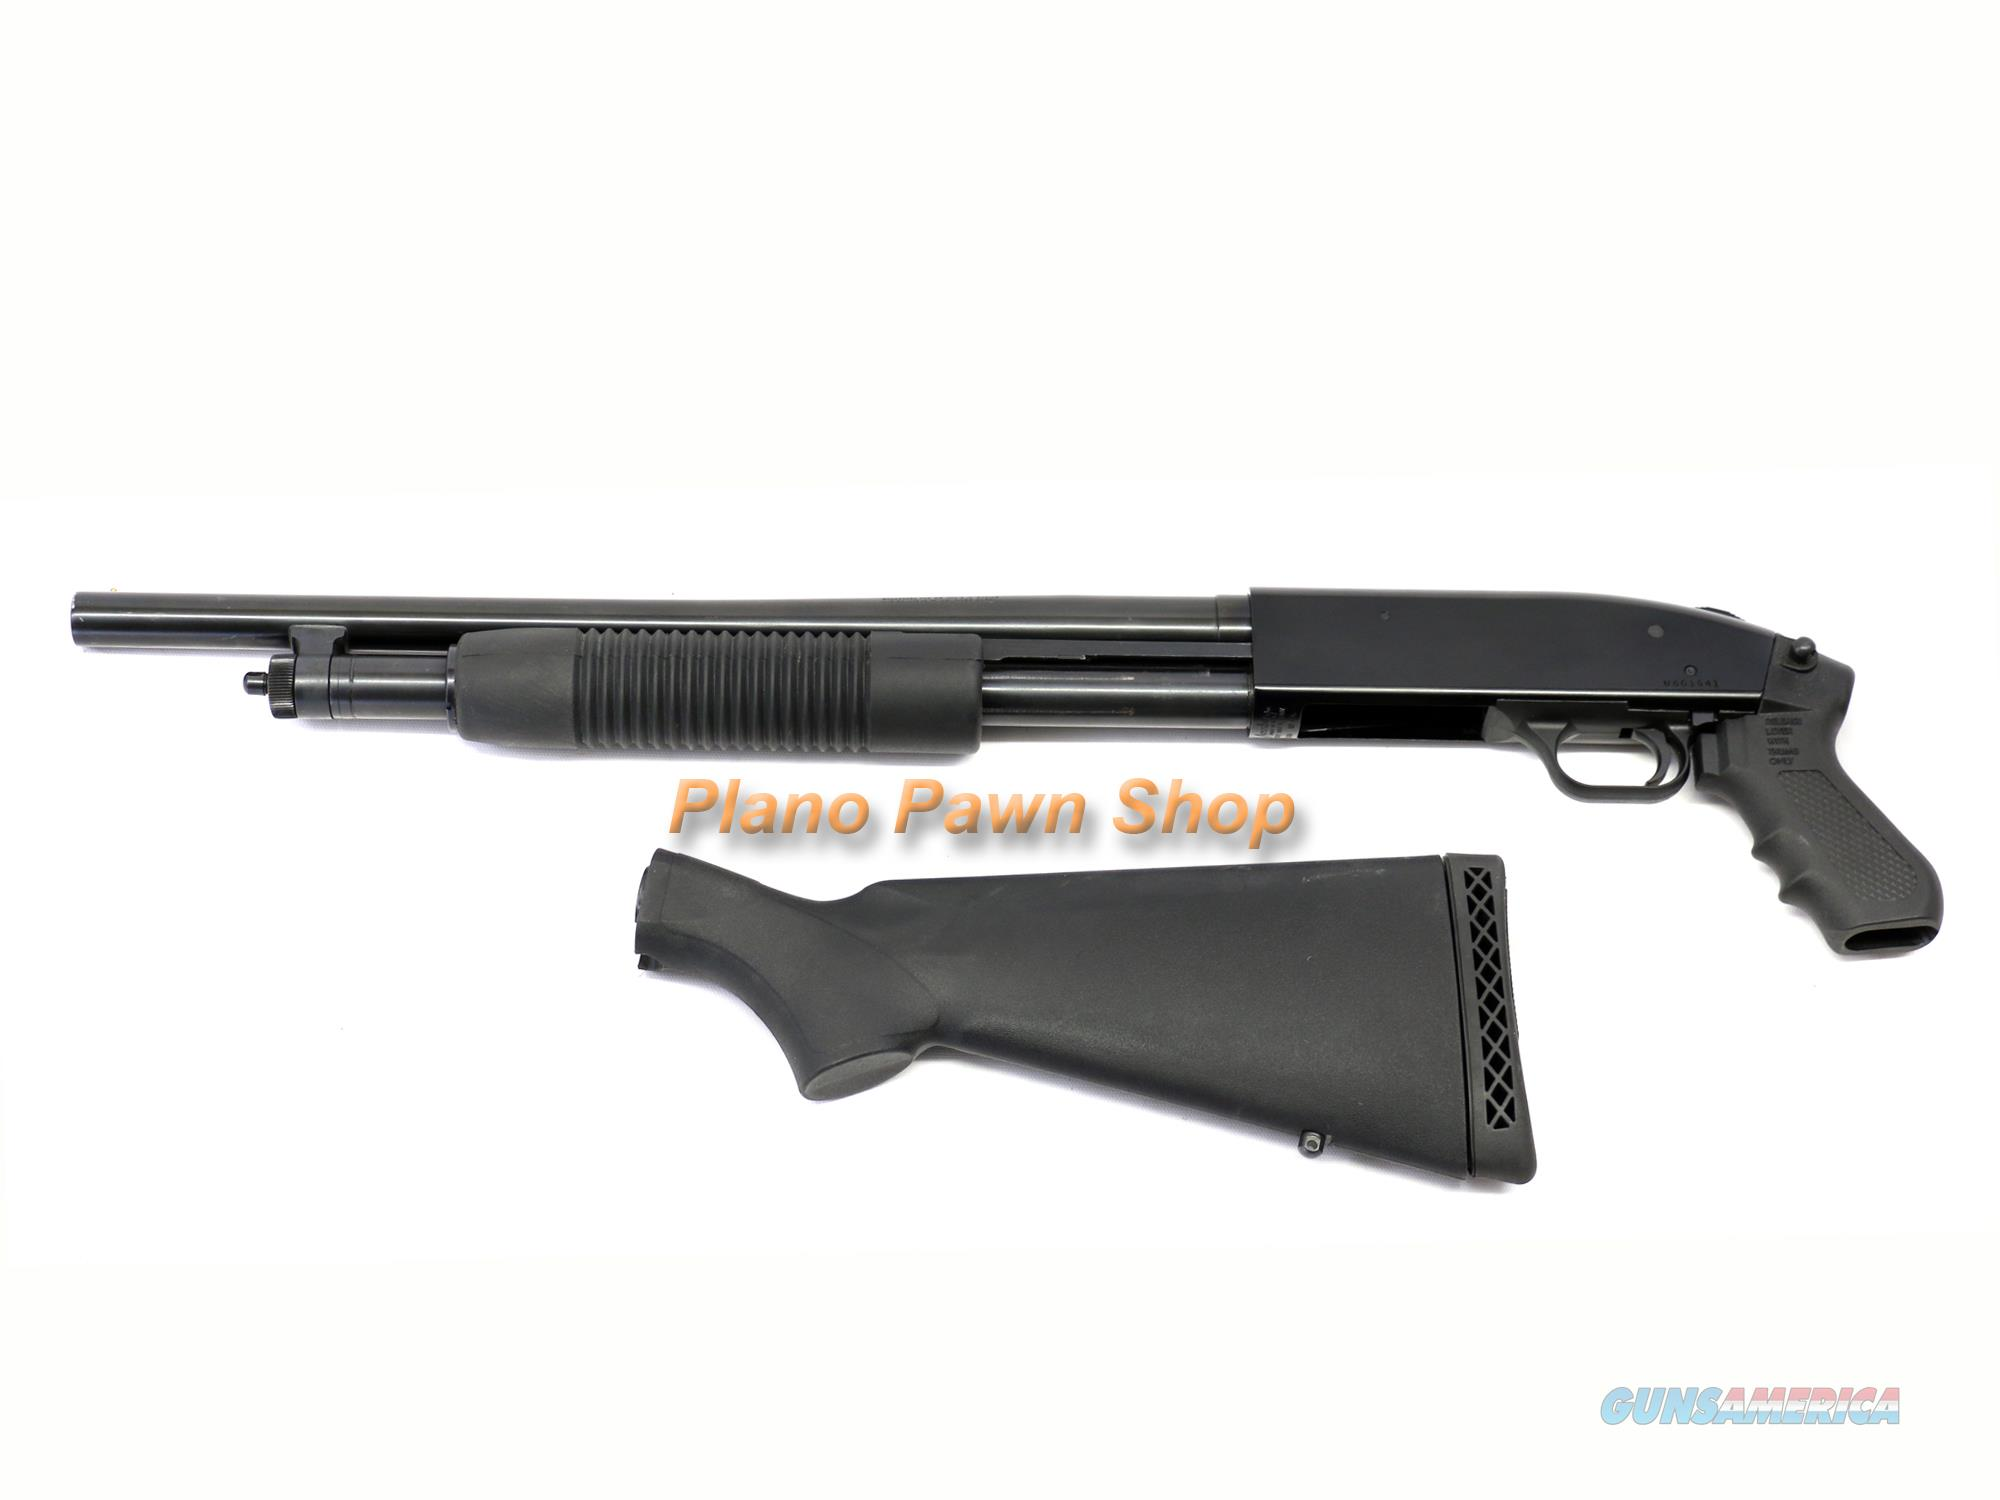 Mossberg 500 12GA Home Defense Shotgun with Pistol Grip & Shoulder Stock  Guns > Shotguns > Mossberg Shotguns > Pump > Tactical